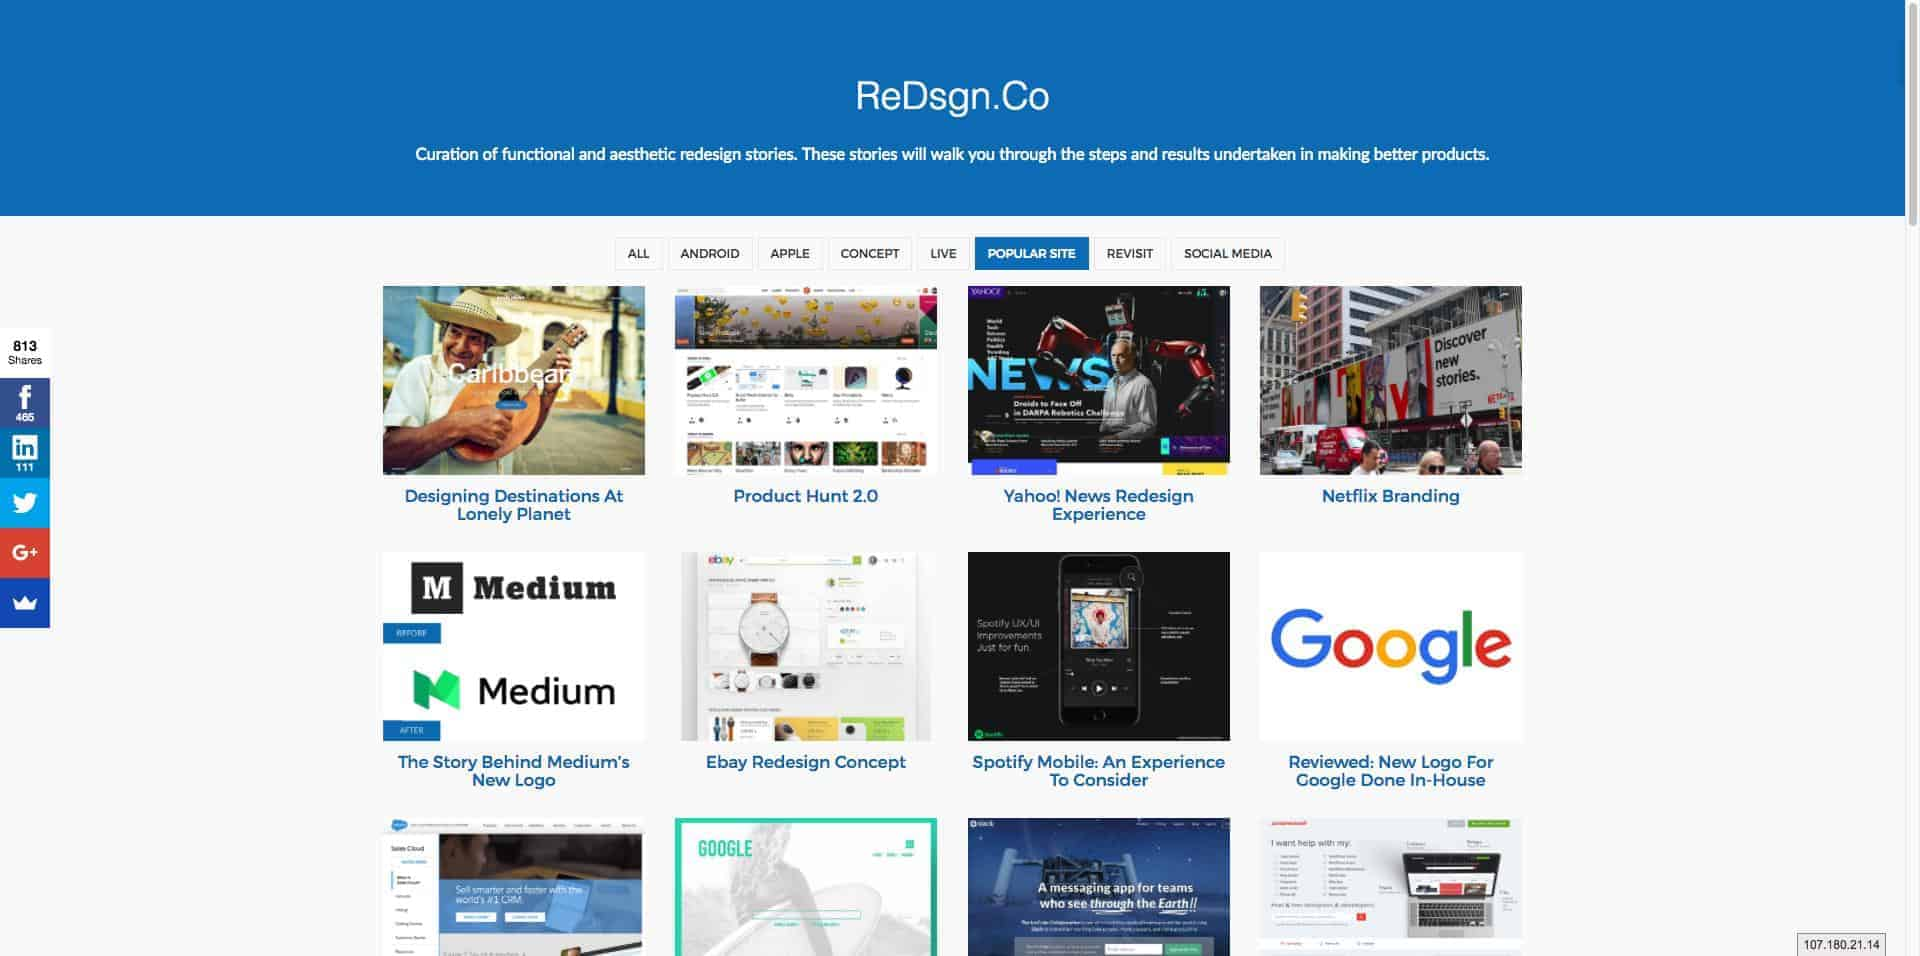 ReDsgn Co ReDesign Stories Worth Sharing